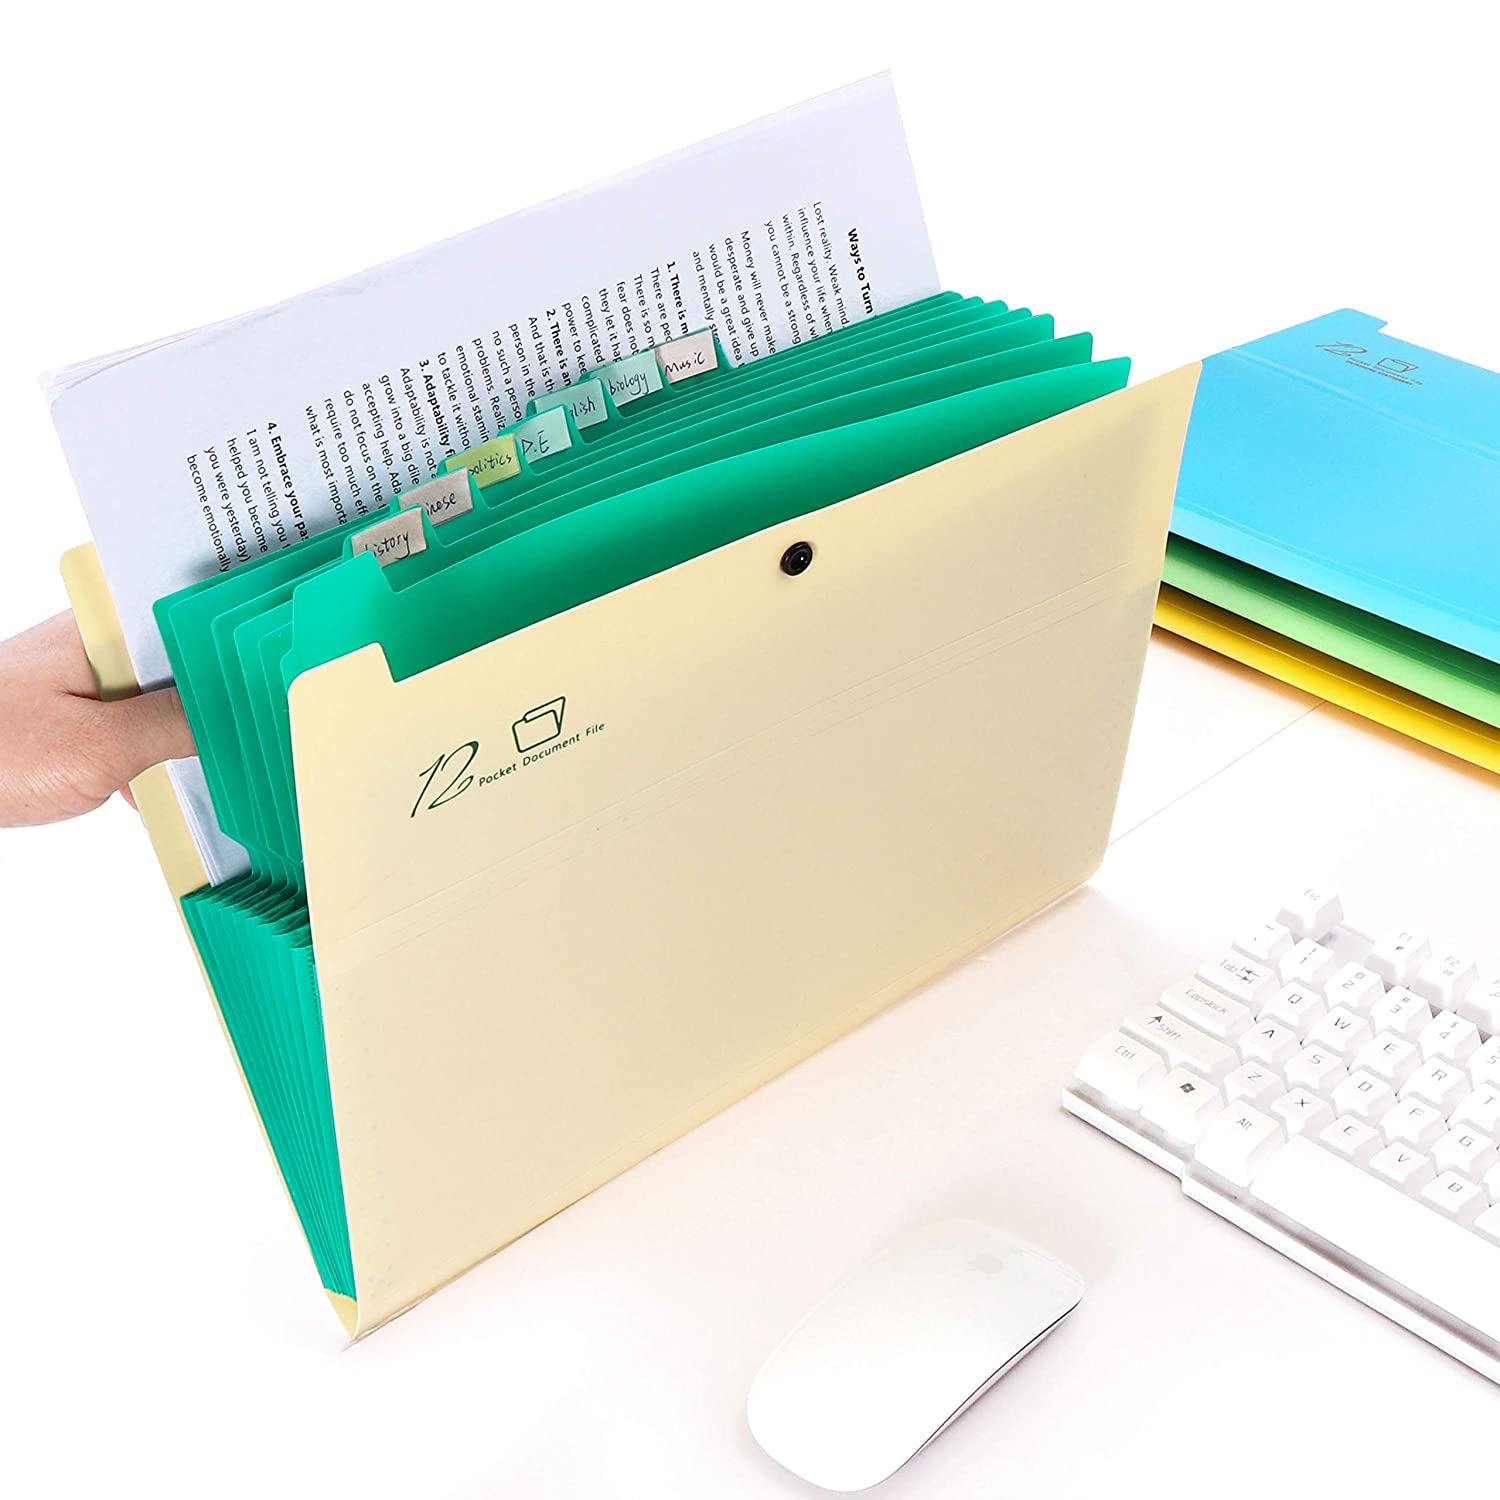 Blue HC Eco-Friendly Plastic Expanding File Folders 12 Pockets Accordion Document Organizer A4 Letter Size with Snap Closure Pocket Document File for School Office and Families